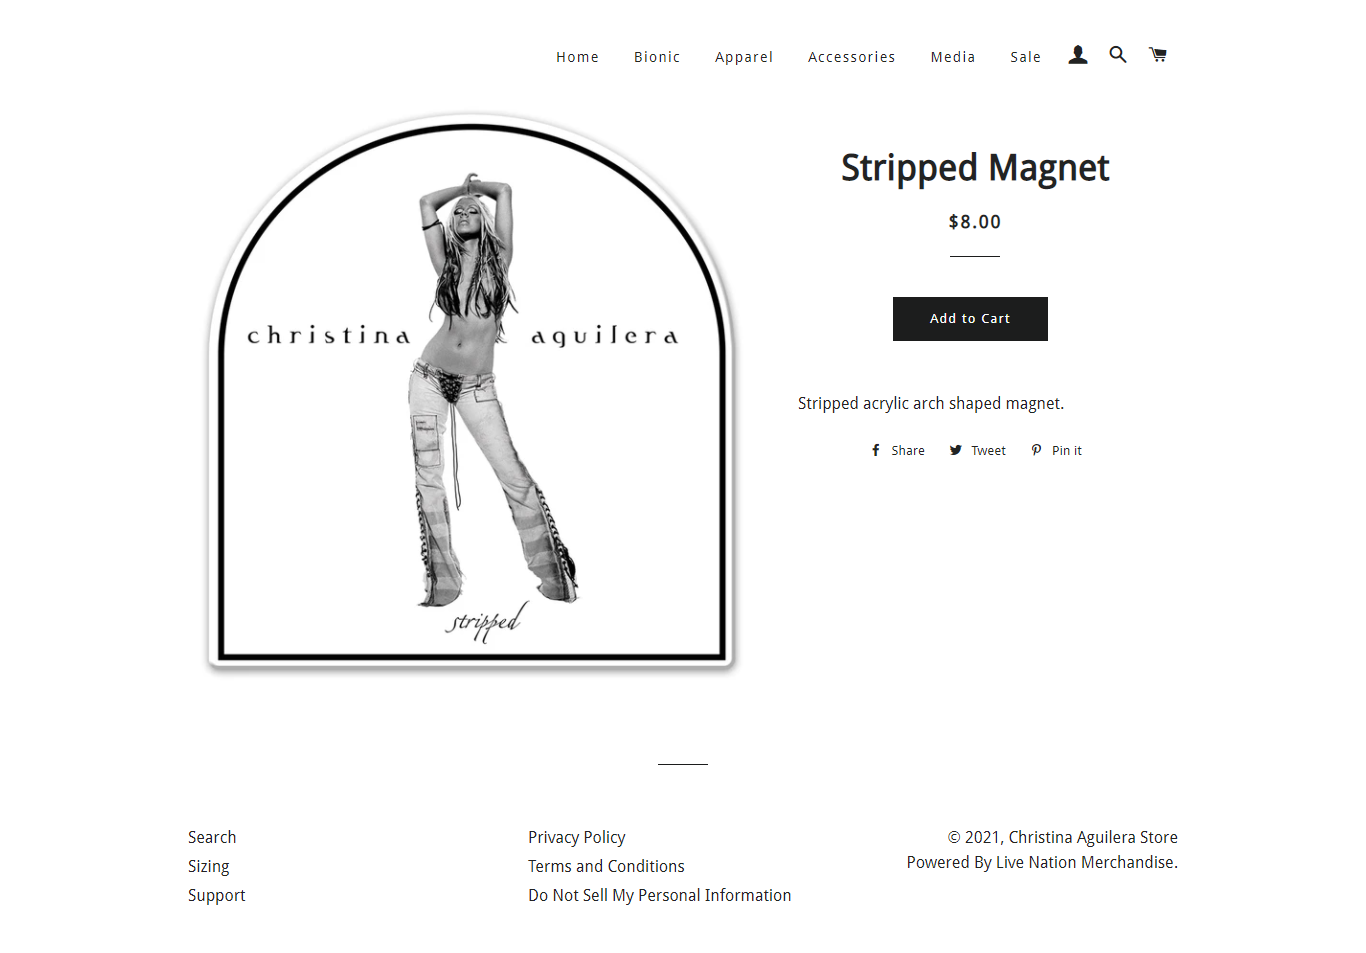 shop-christinaaguilera-products-stripped